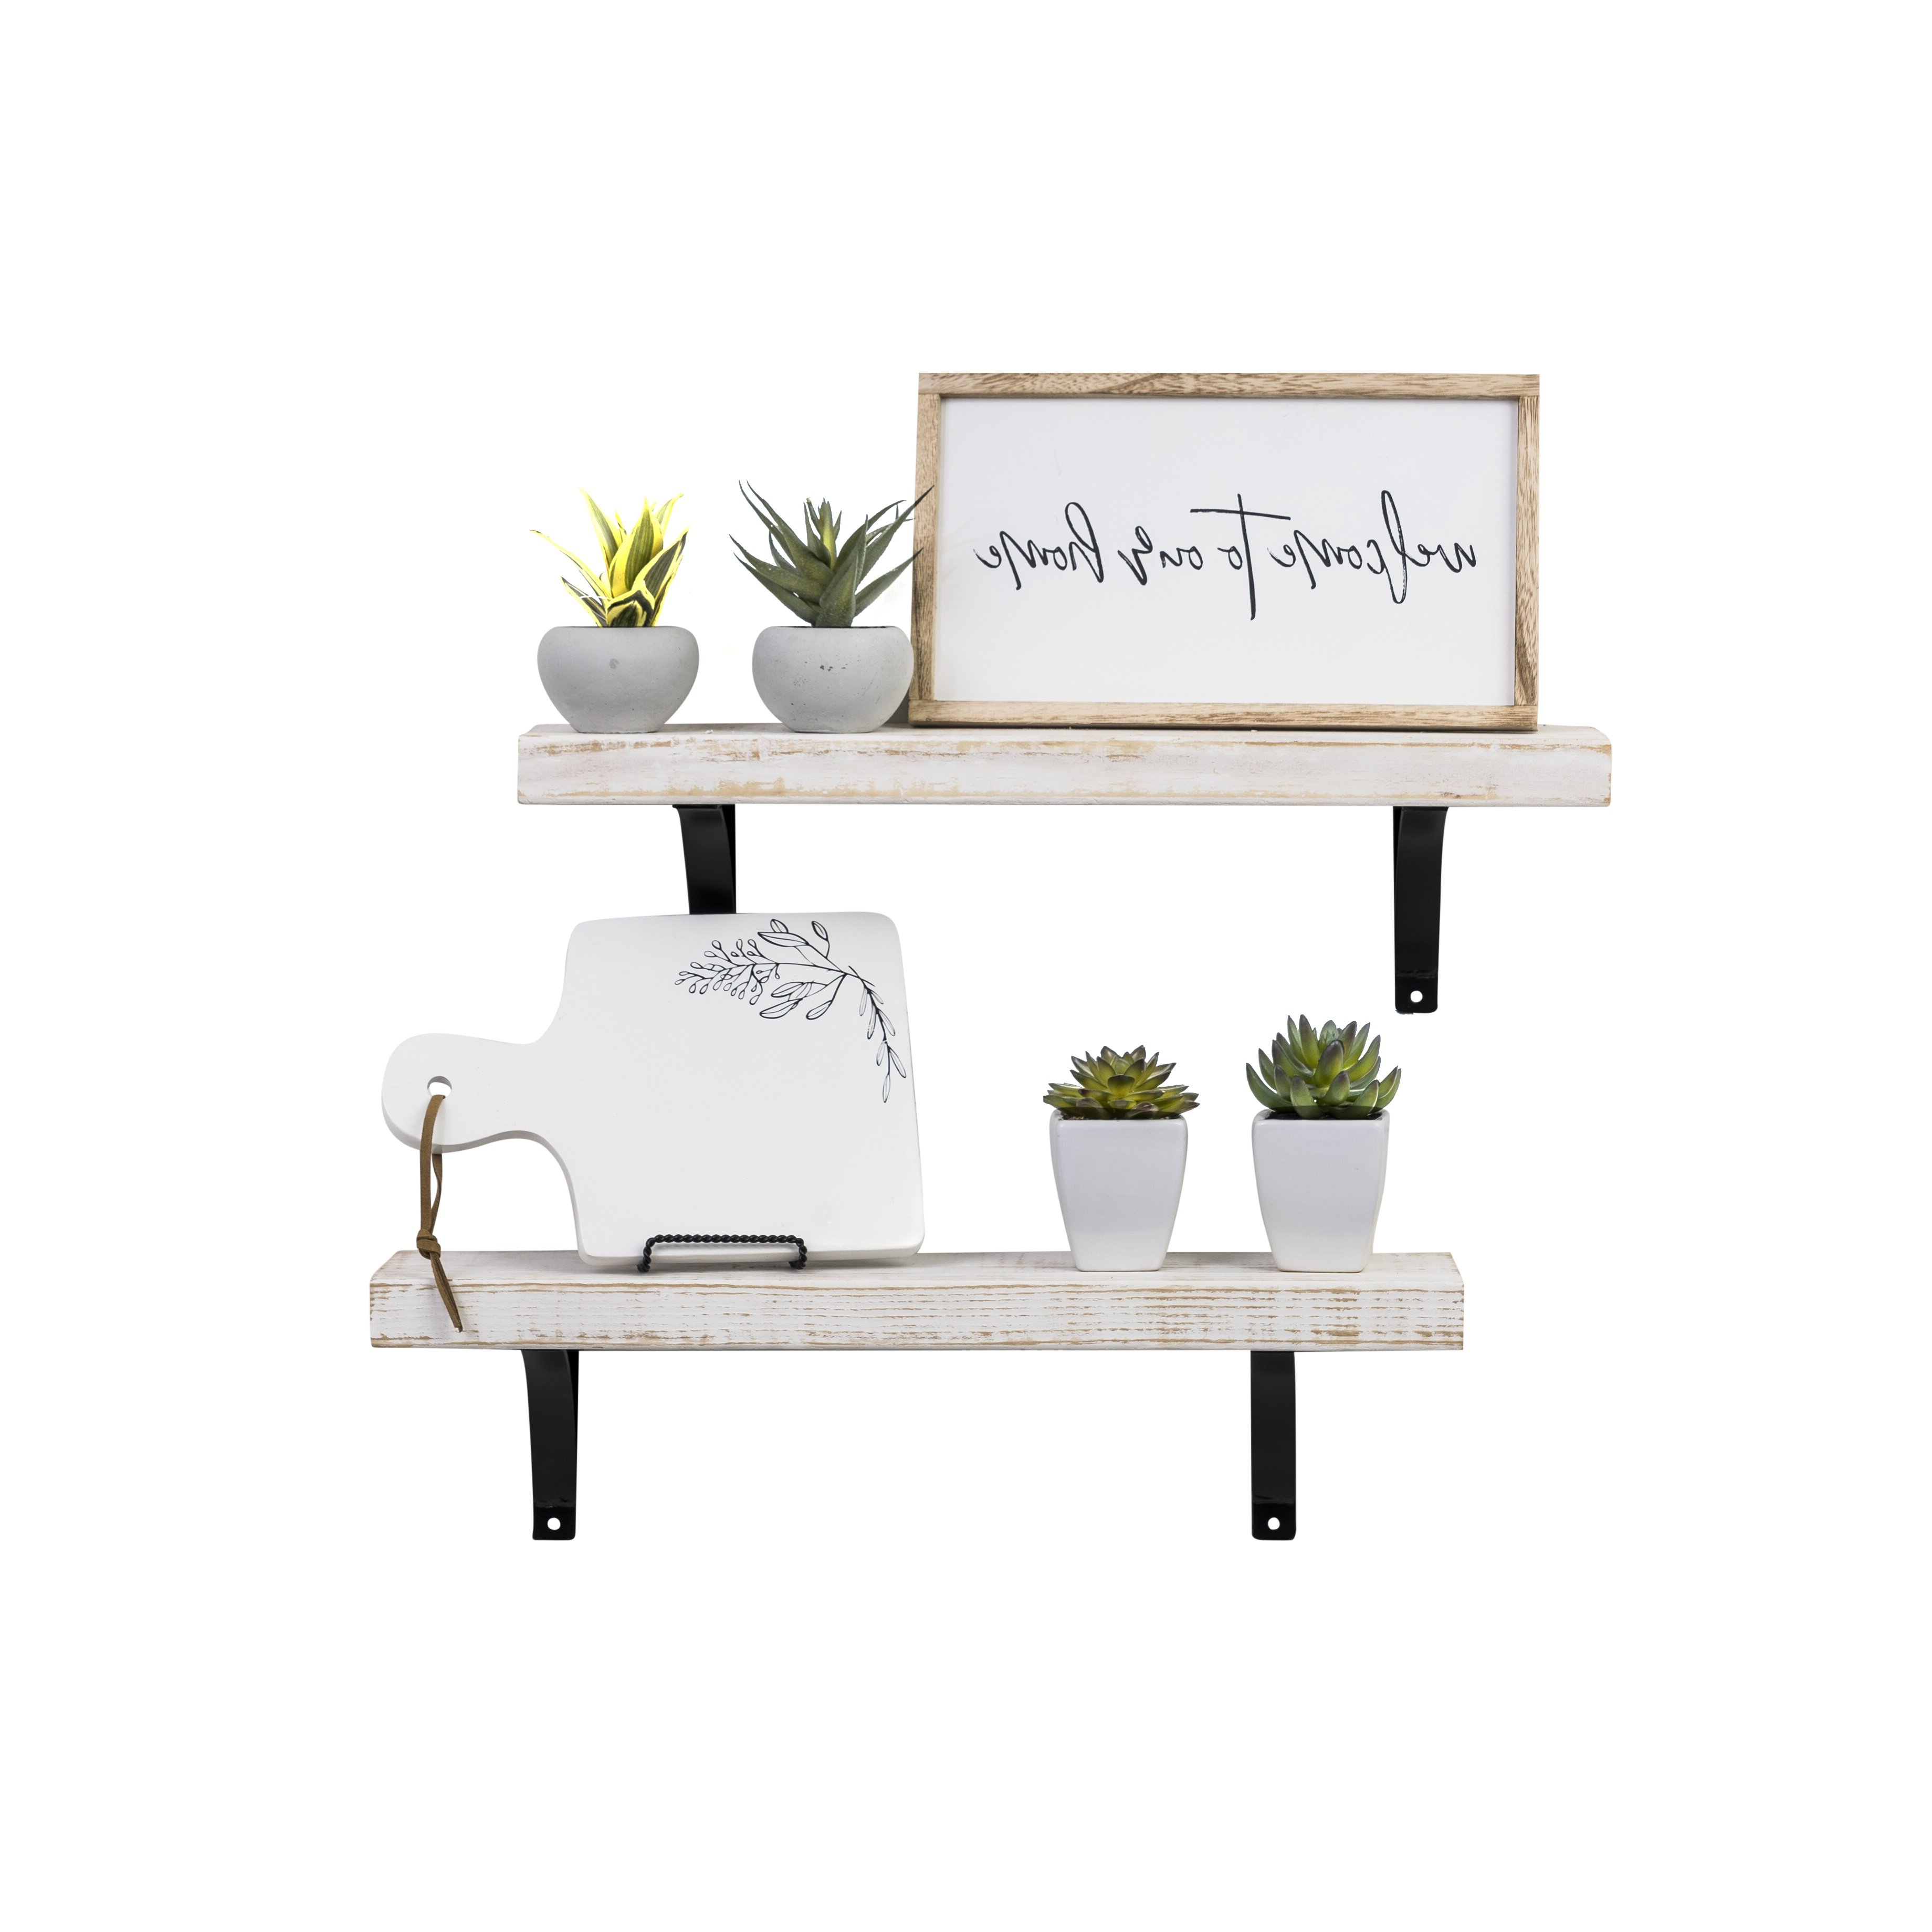 Farm Metal Wall Rack And 3 Tin Pot With Hanger Wall Decor Intended For Most Up To Date Laurel Foundry Modern Farmhouse Pinecrest Industrial Grace Simple (View 8 of 20)